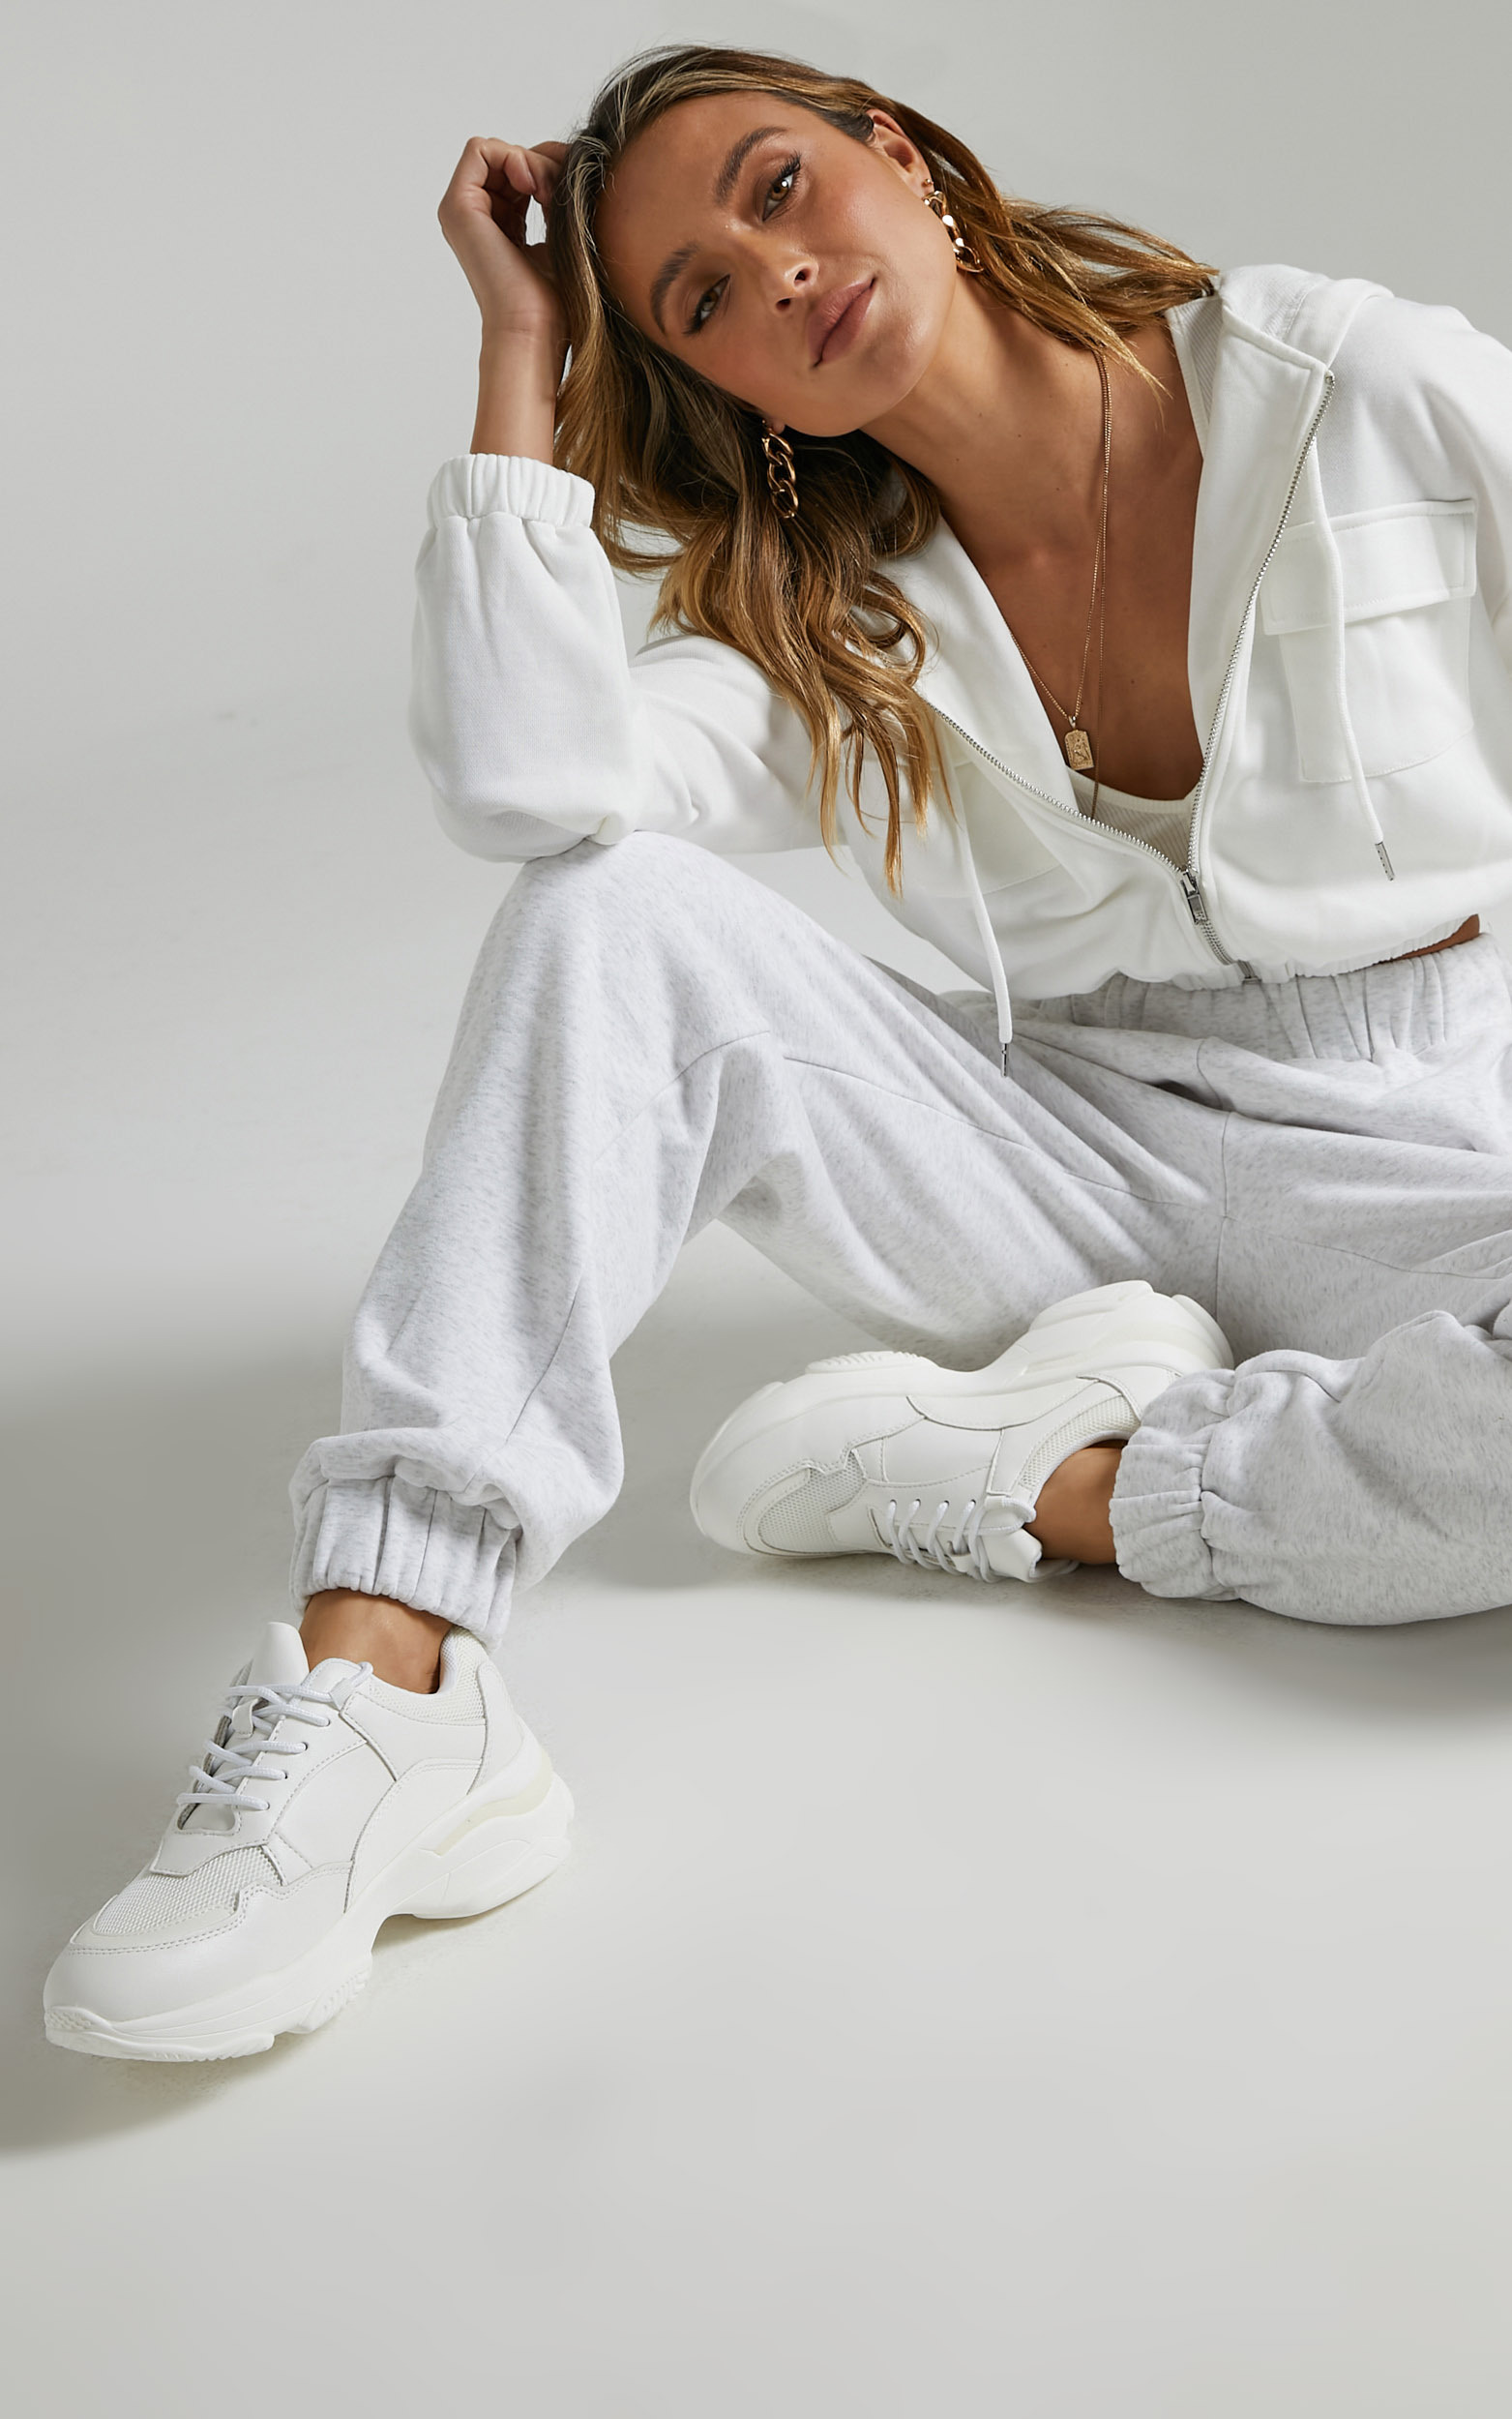 Billini - Stassi Sneakers in White - 05, WHT2, hi-res image number null